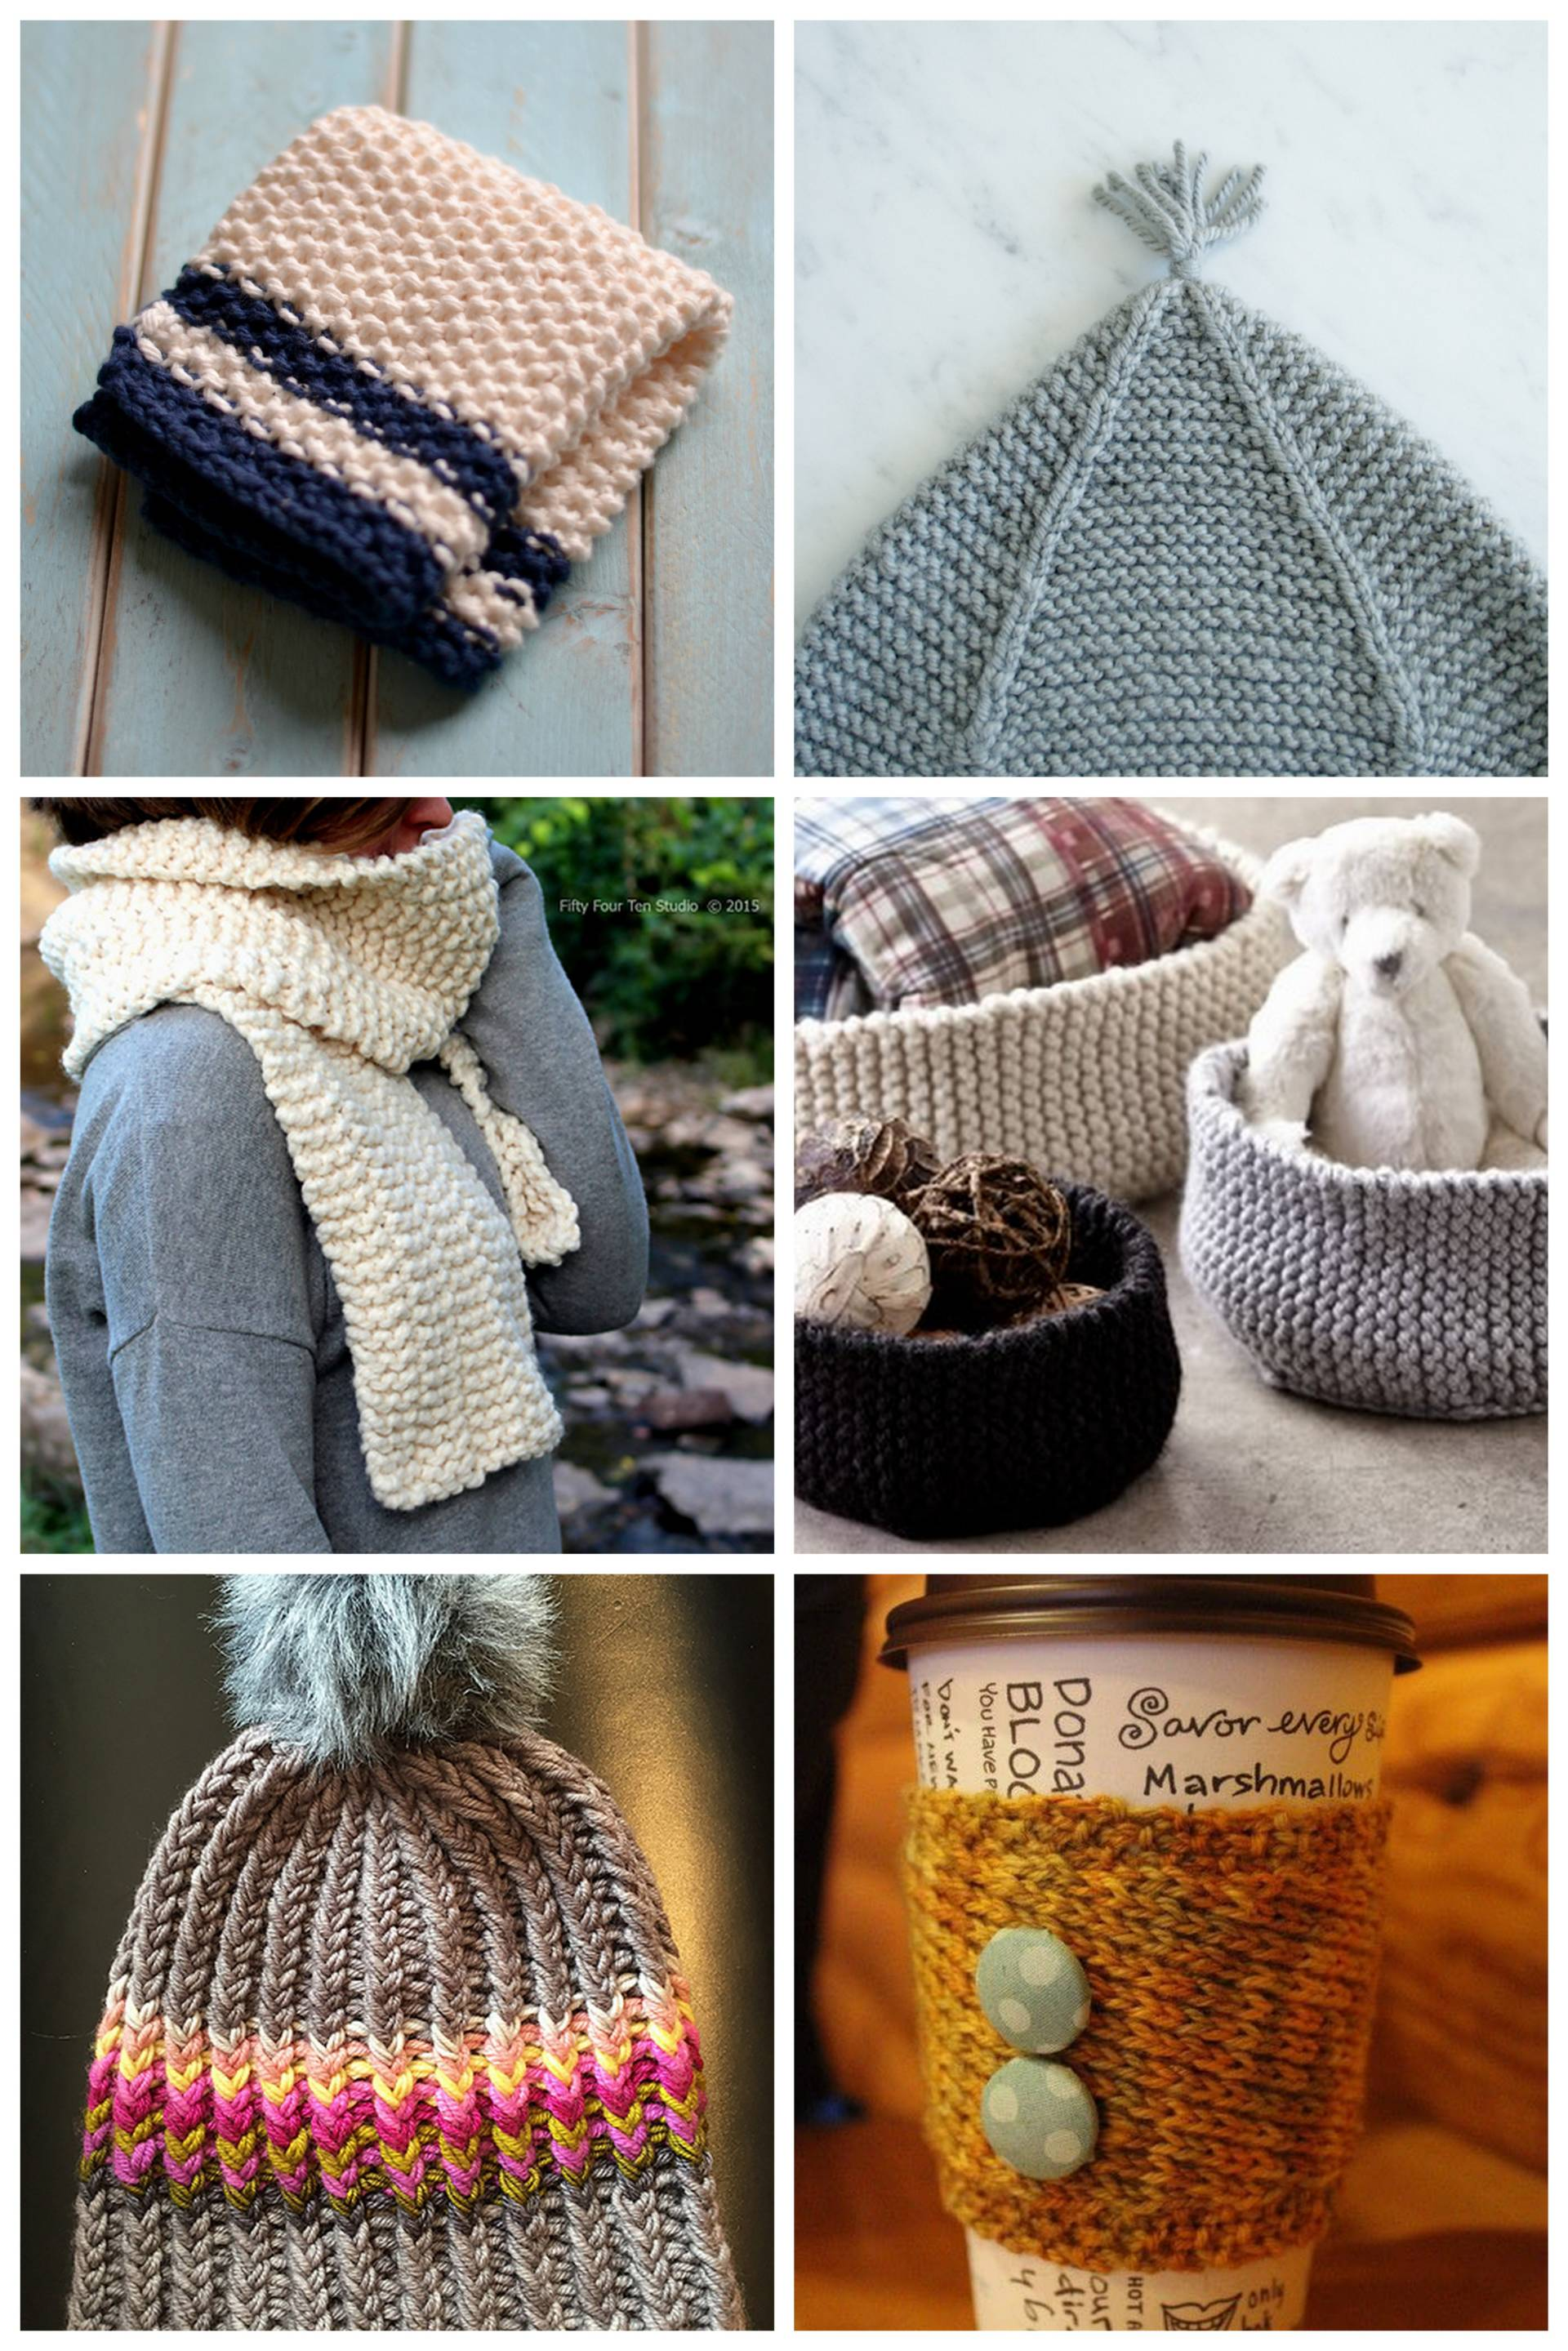 a few simple knitting patterns to knock out in one day for Knit in Public Day